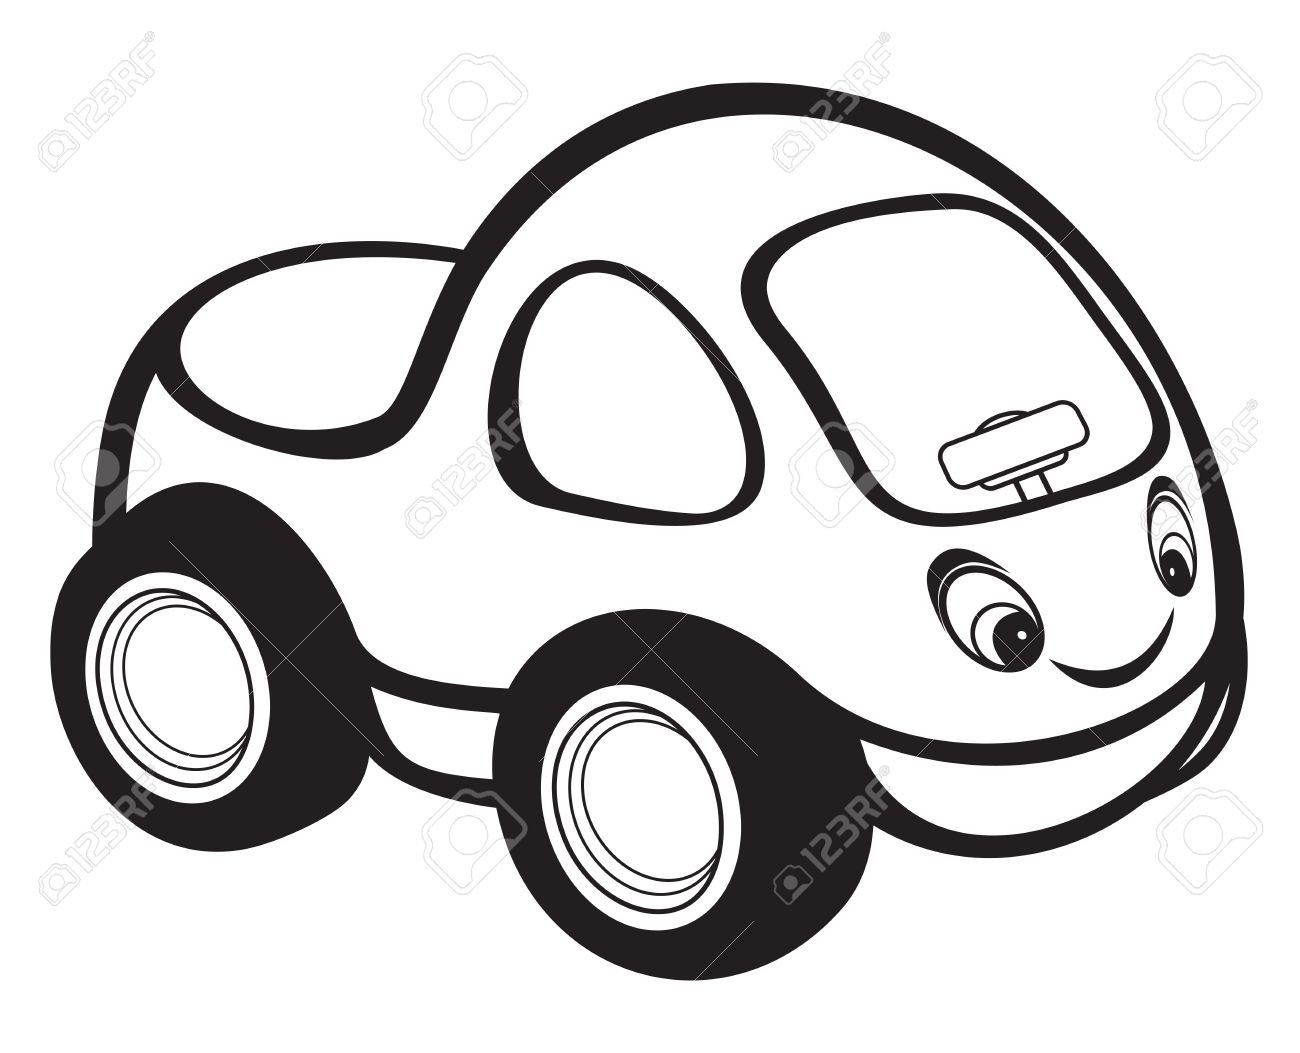 cute kids race car black and white royalty free cliparts vectors